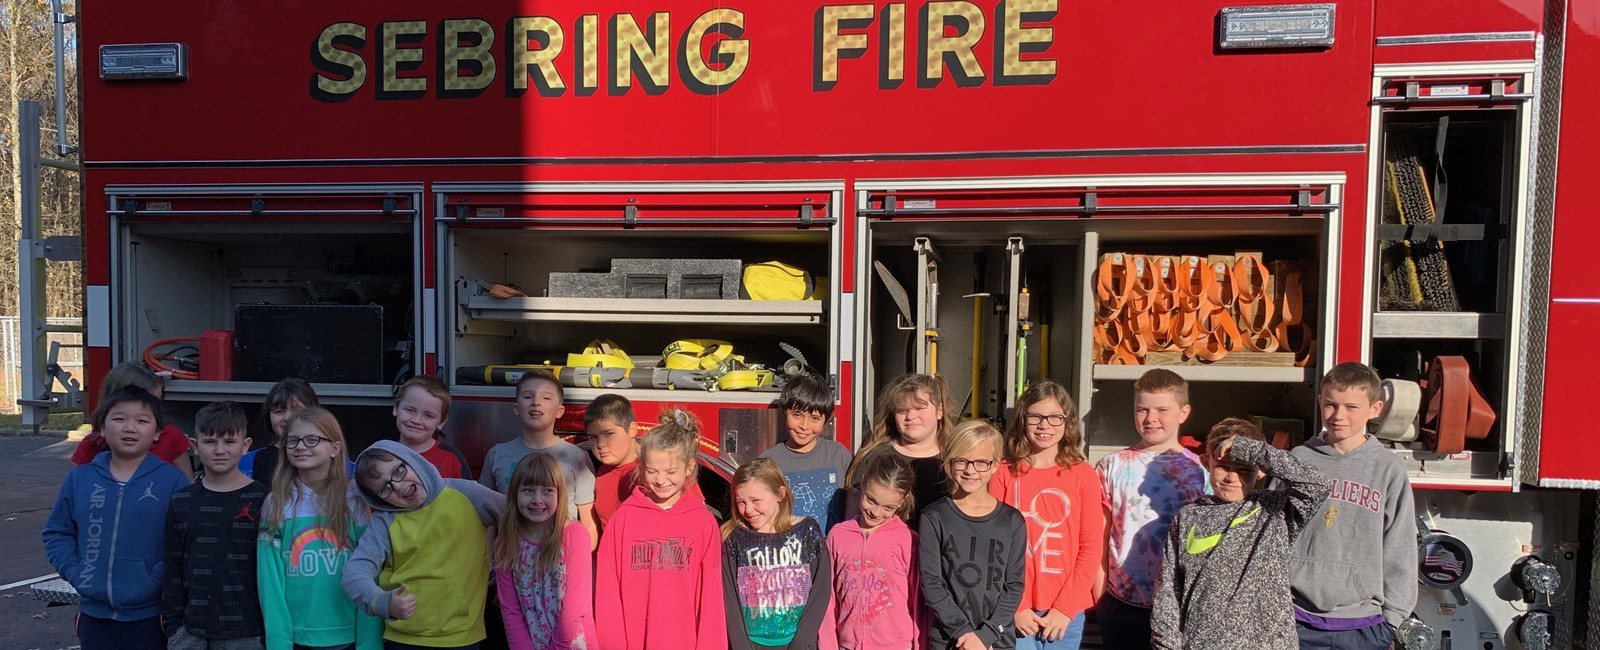 Our students learned a lot about fire safety and how to be prepared in school and at home!